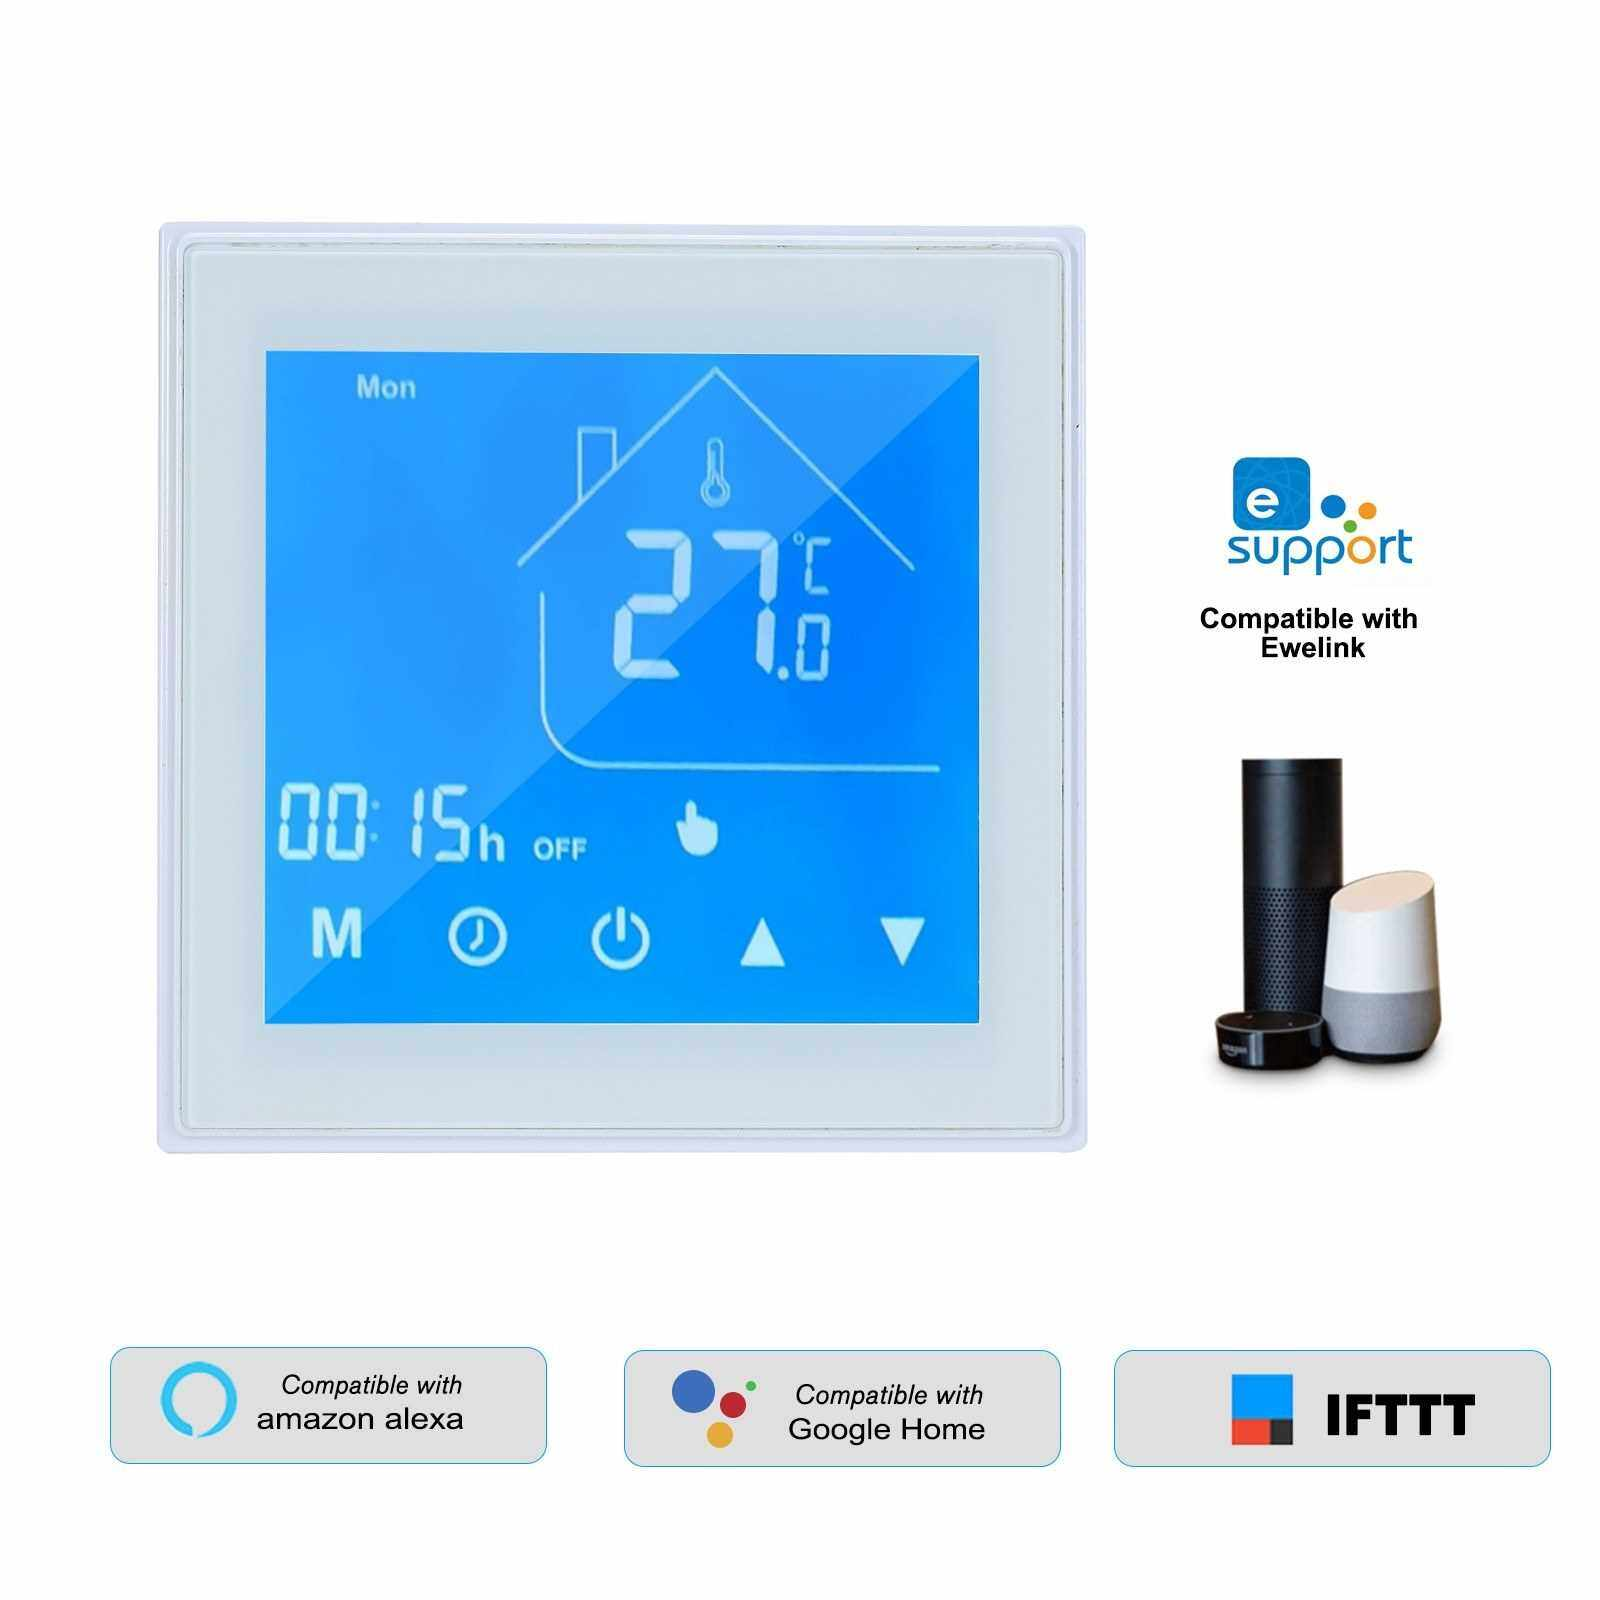 WiFi Smart Thermostat Temperature Controller LCD Display Week Programmable for Water/Gas Boiler Ewelink APP Control Compatible with Alexa Google Home (White)